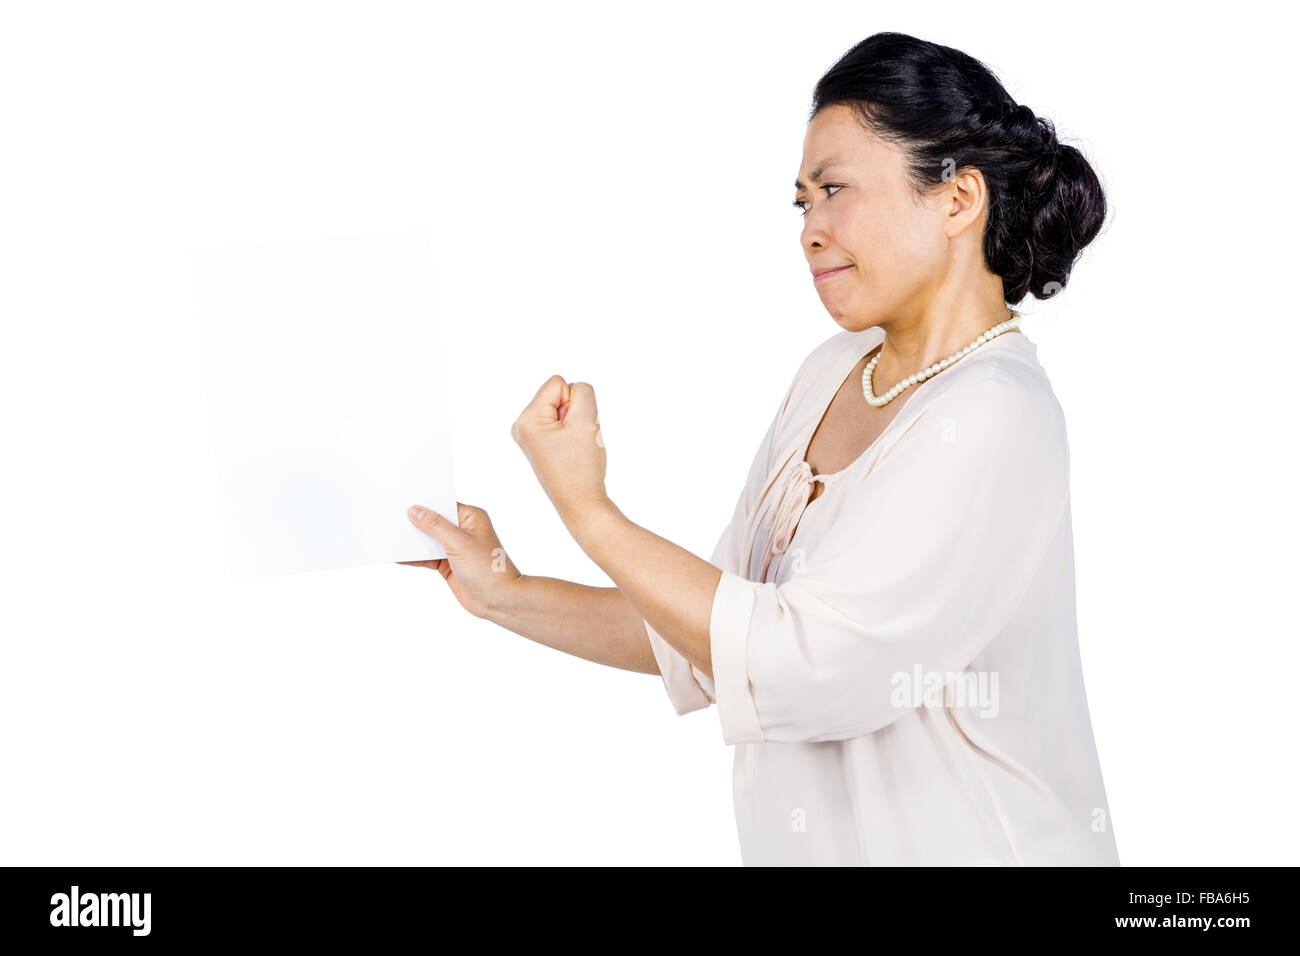 Angry woman shaking her fist - Stock Image